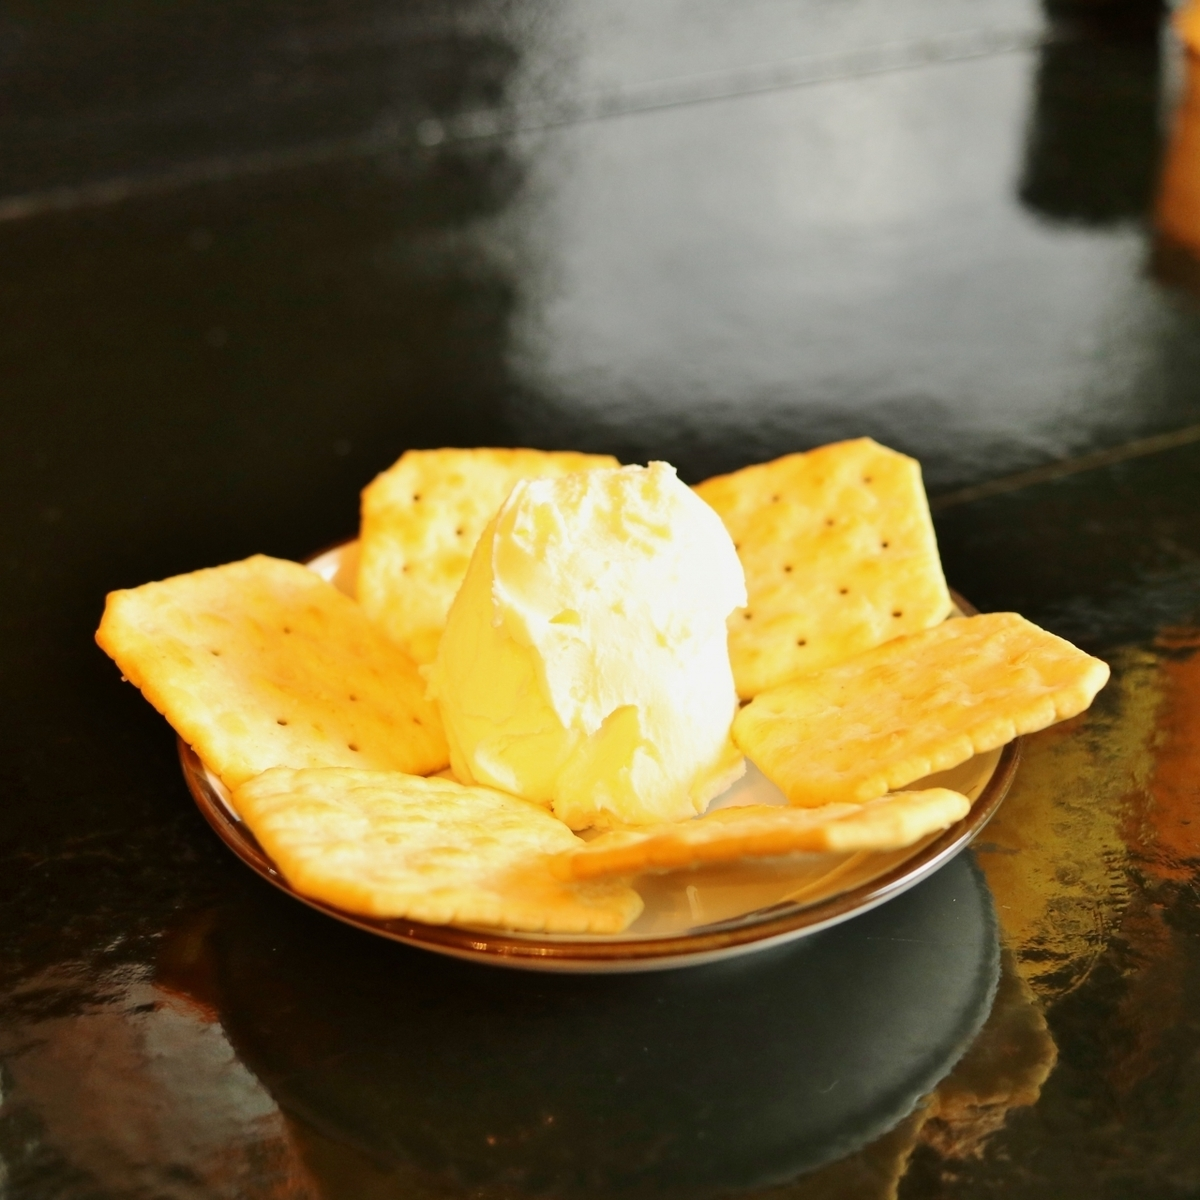 Zao cheese (with crackers)